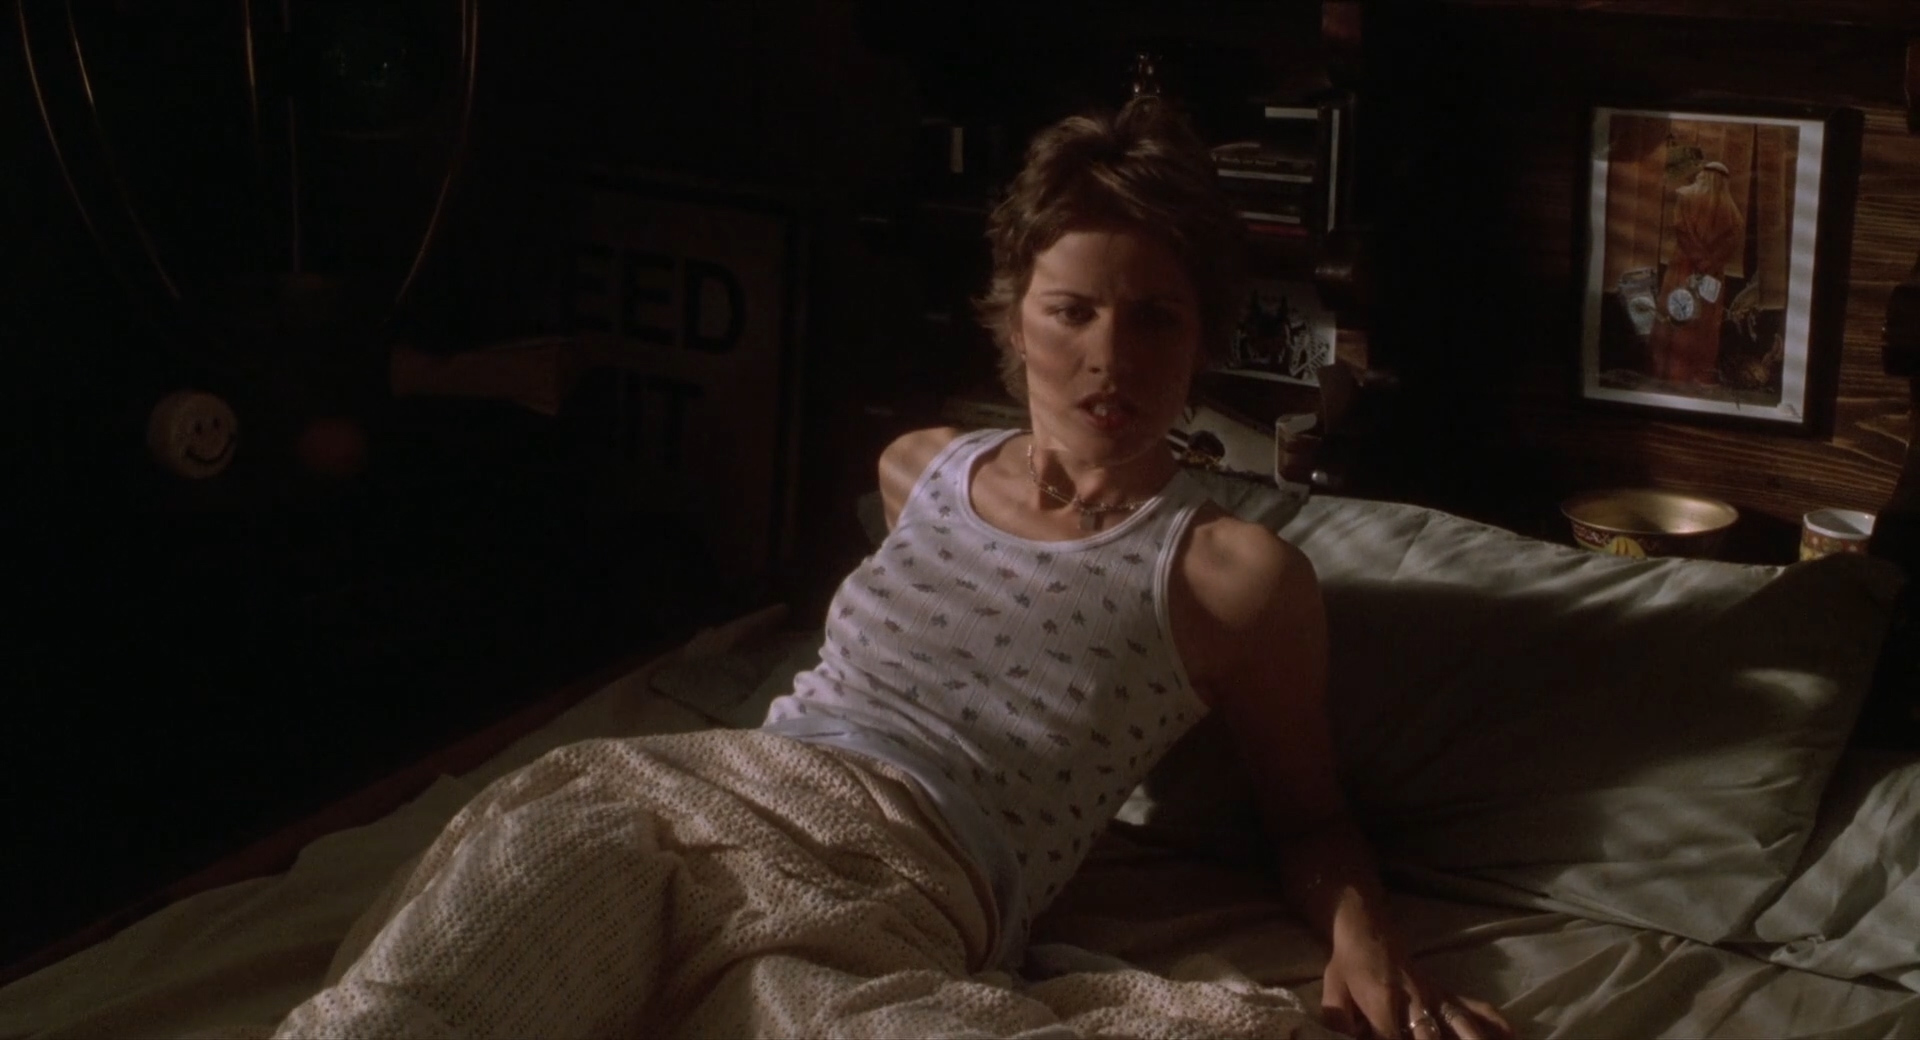 Candy Yuen Nude Simple kim dickens nude brief topless while having sex - truth or